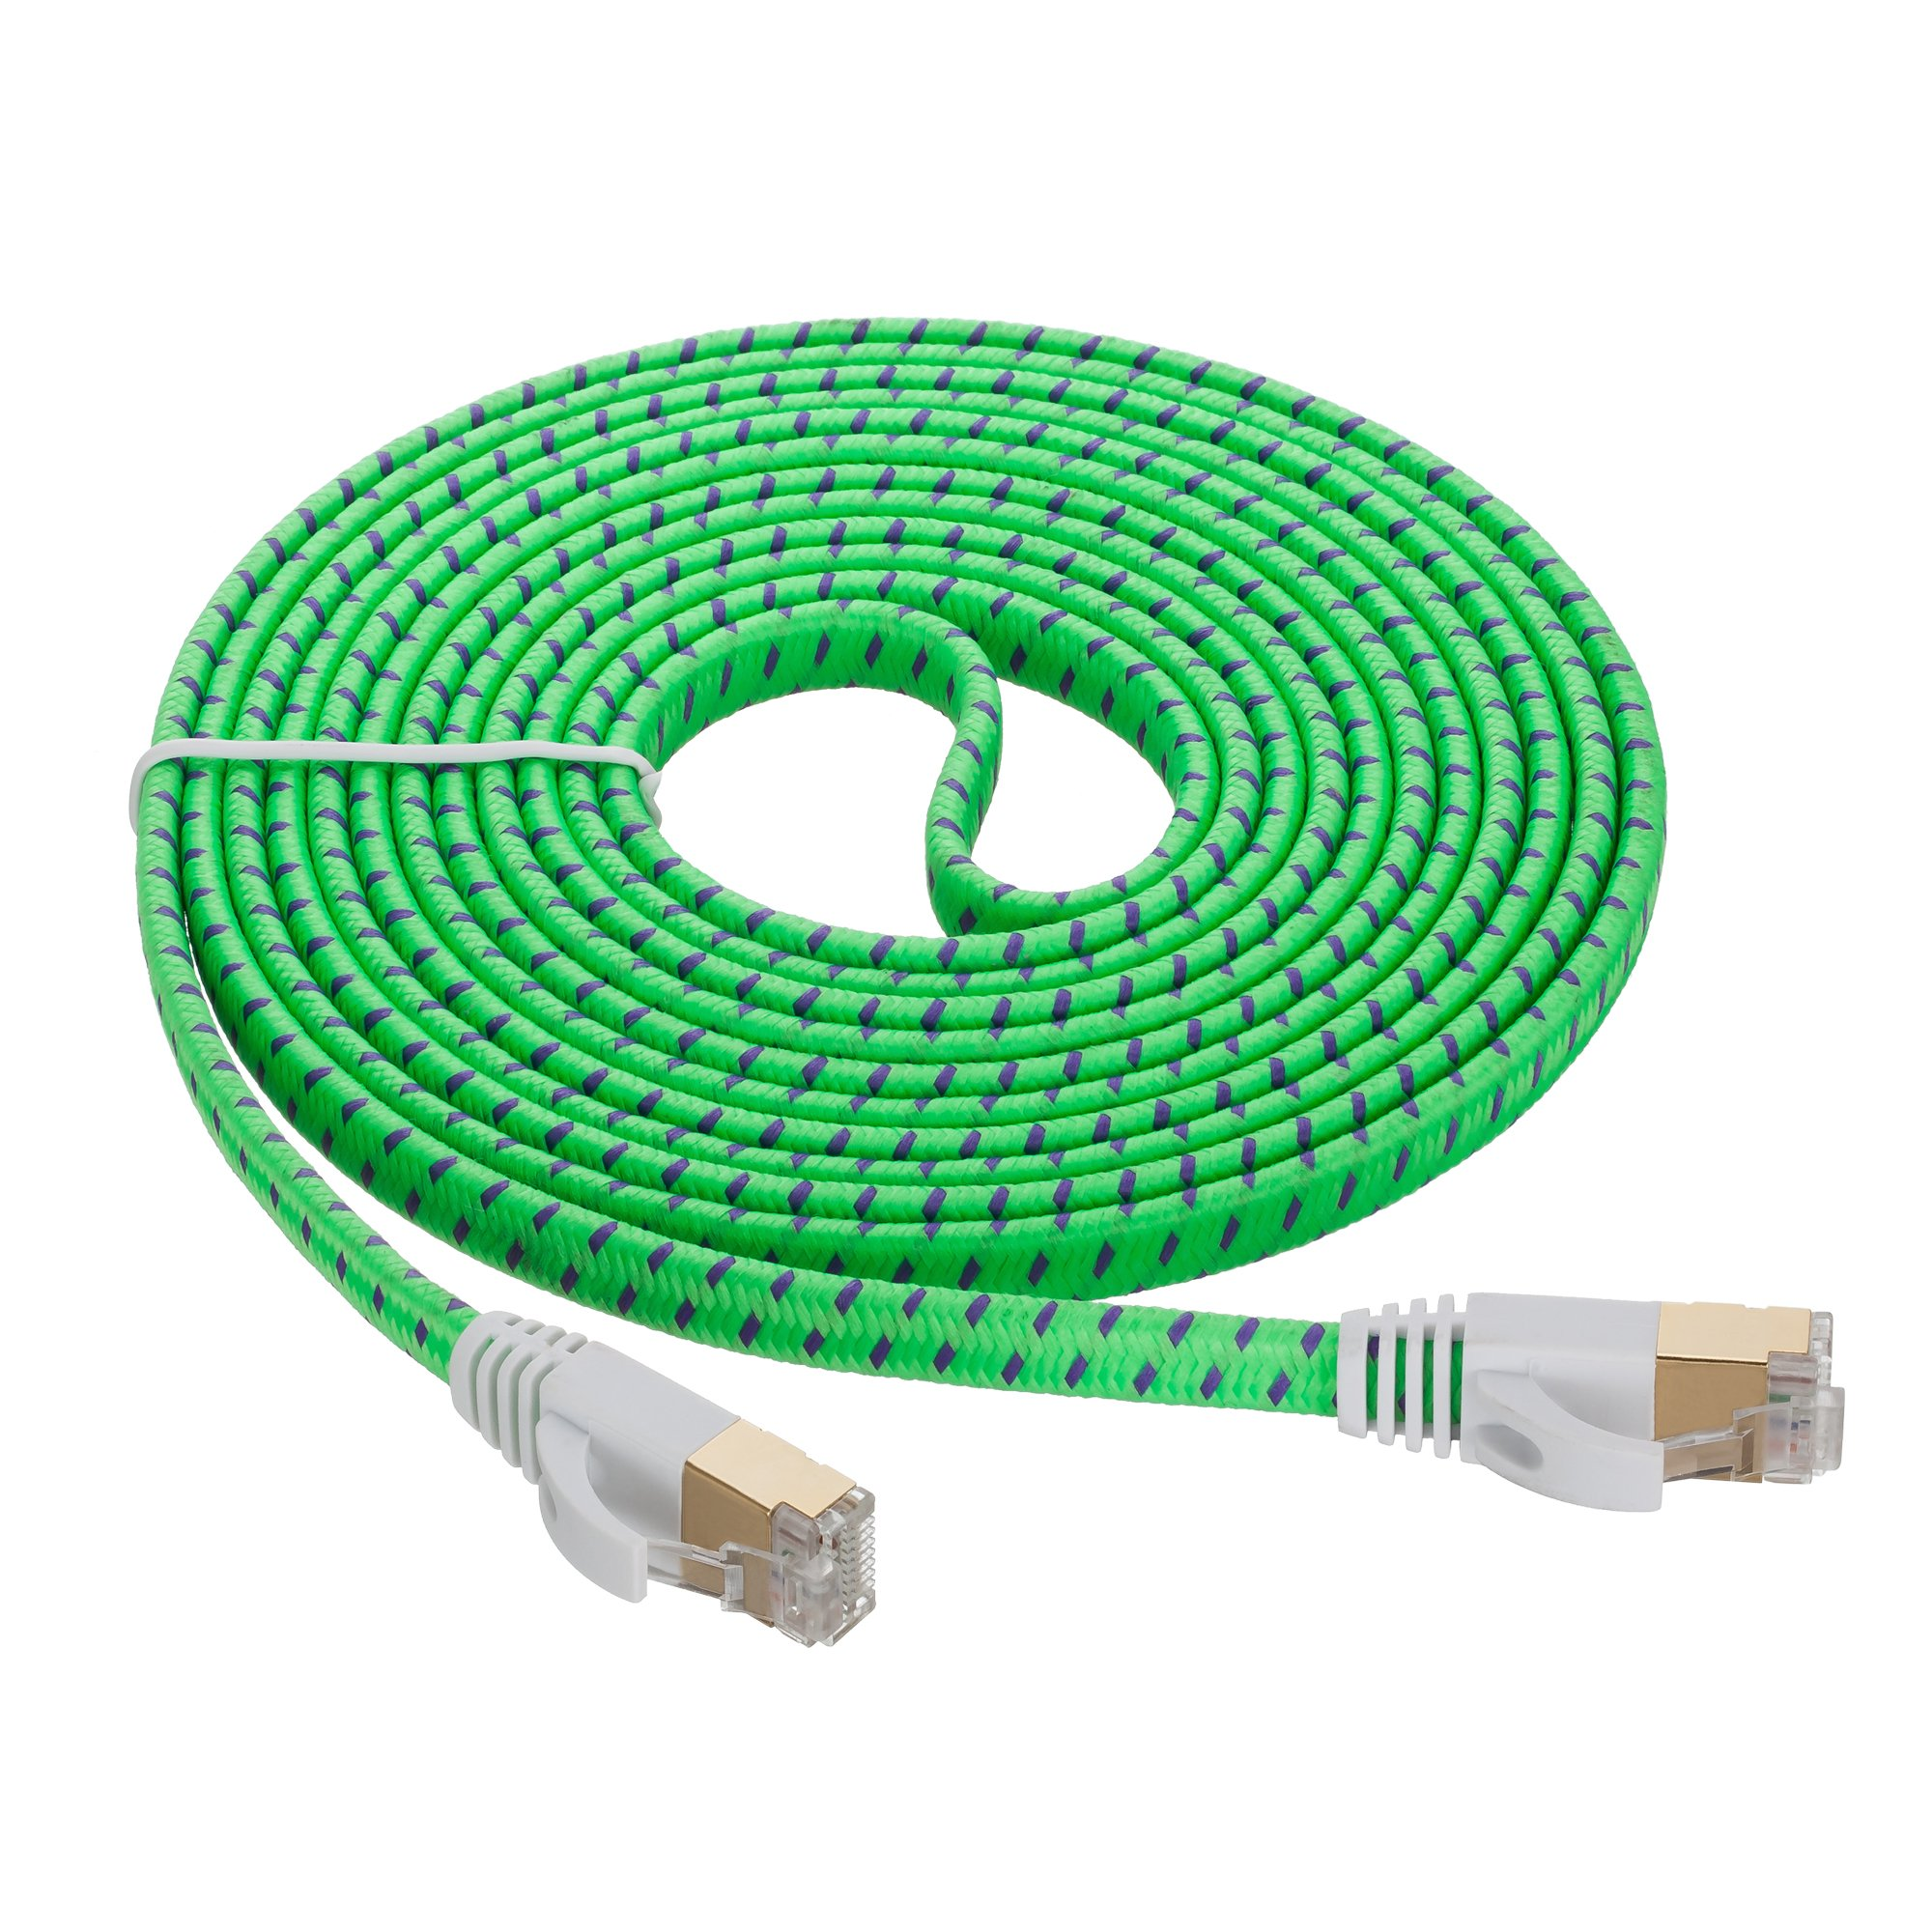 Cat 7 Ethernet Cable 15 ft,JewMod Ethernet Cable Cat7 RJ45 Network Patch Cable Flat 10 Gigabit 600Mhz LAN Wire Cable Cord Shielded for Modem,Router,PC,Laptop,Switch,Xbox 360-White 15Ft .